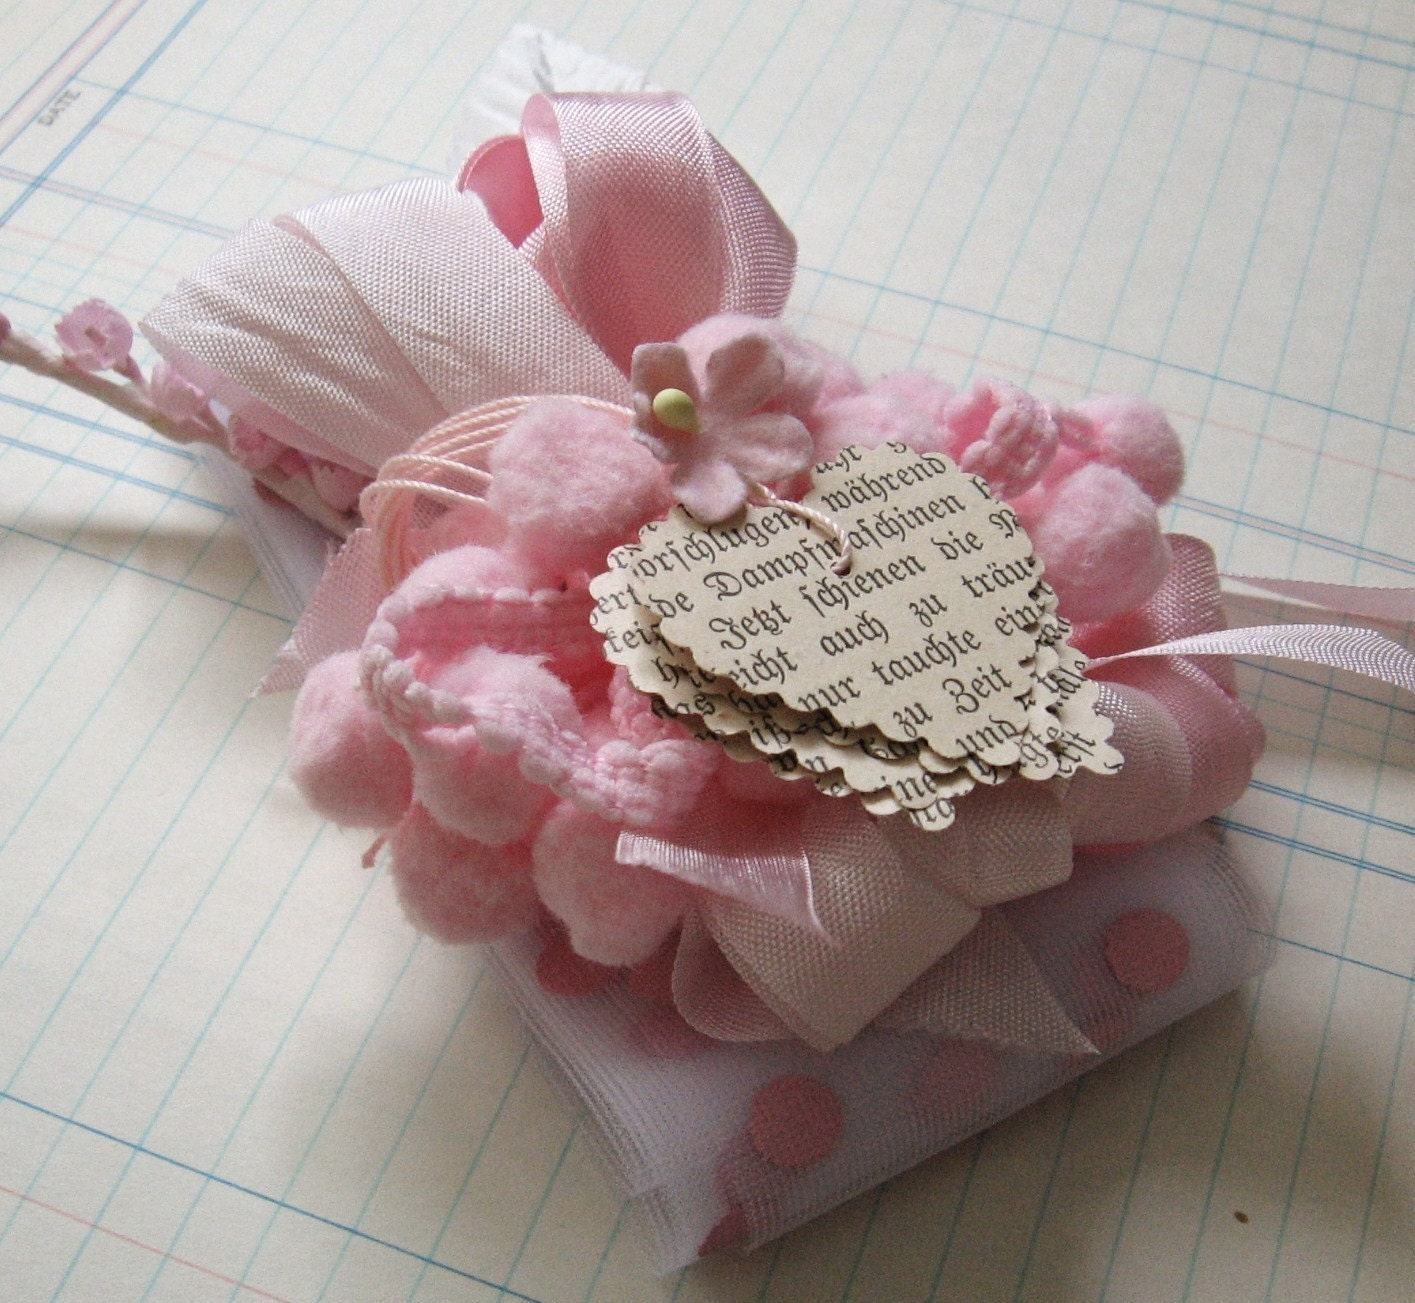 Pretty In Pink Inspiration Set -- Altered Art, Collage, Mixed Media